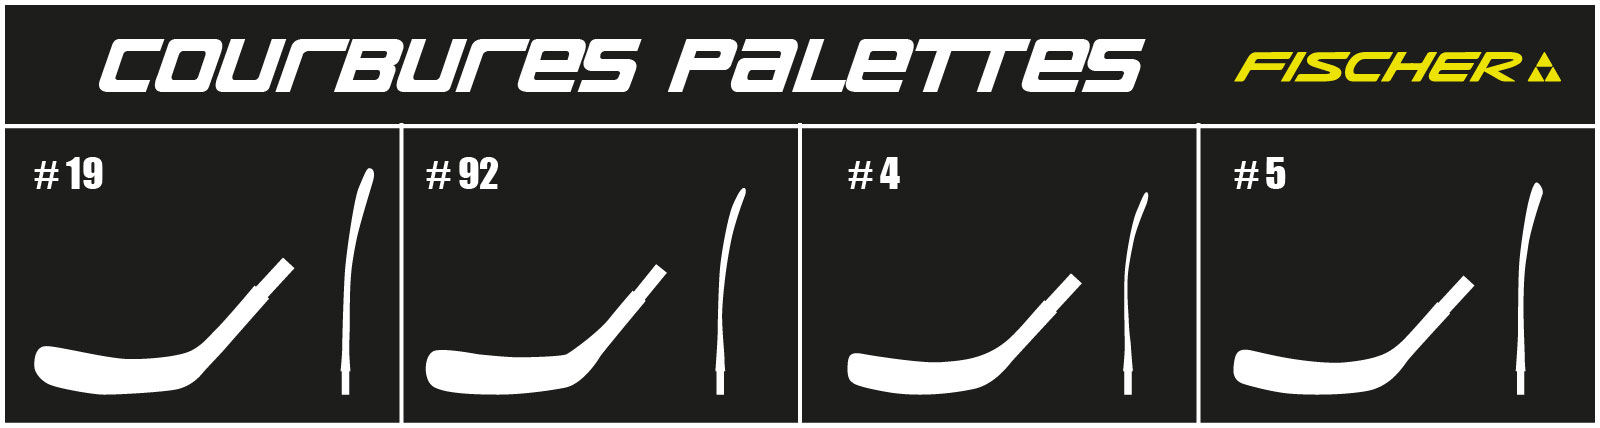 Courbures palettes Fischer hockey Pro Patinage